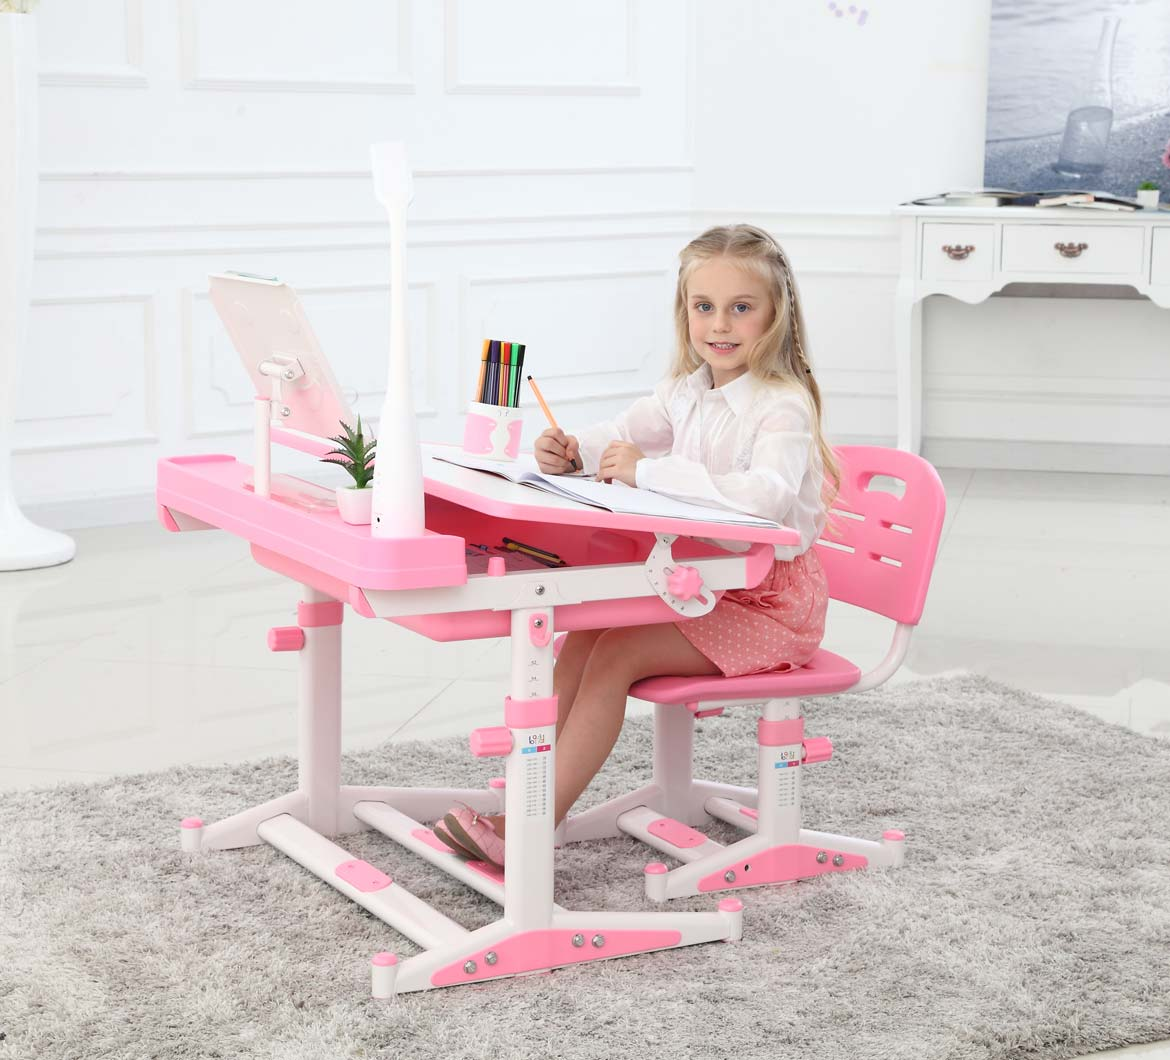 height-adjustable-kids-study-table-school-desk-portfolio-sprite-pink-desk-1